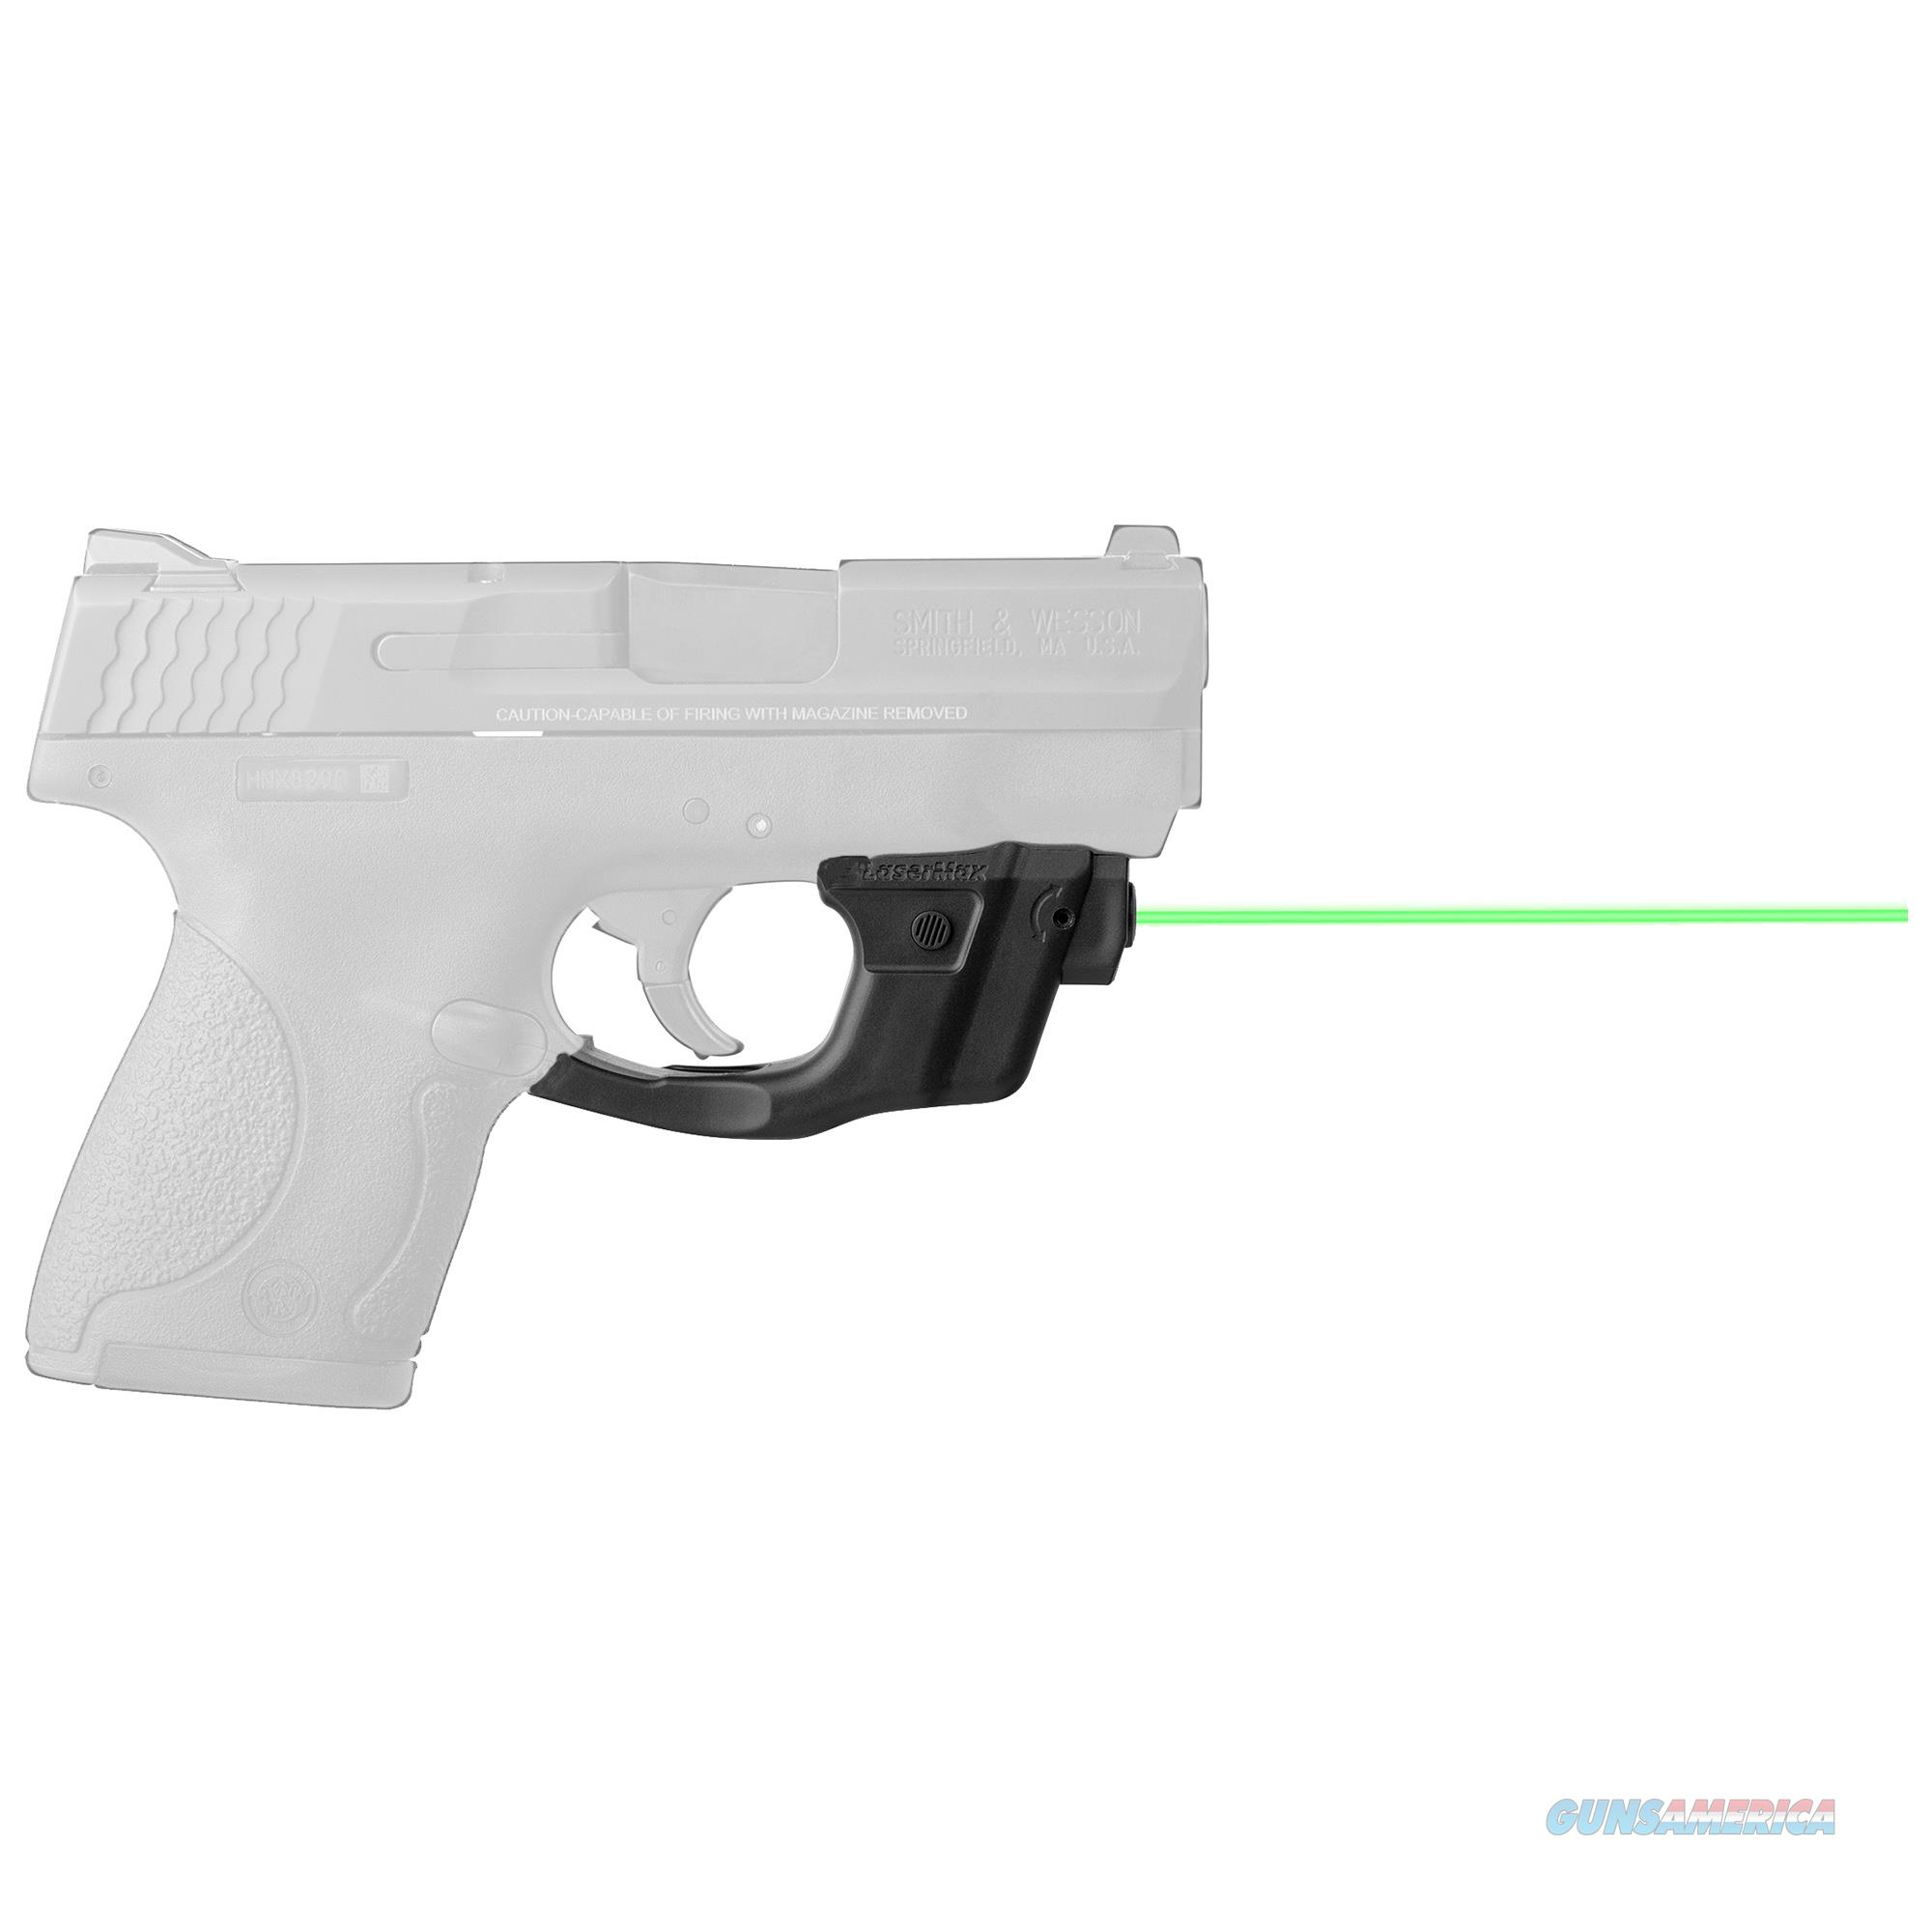 Lasermax Centerfire Laser Sight GS-SHIELD-G  Non-Guns > Miscellaneous